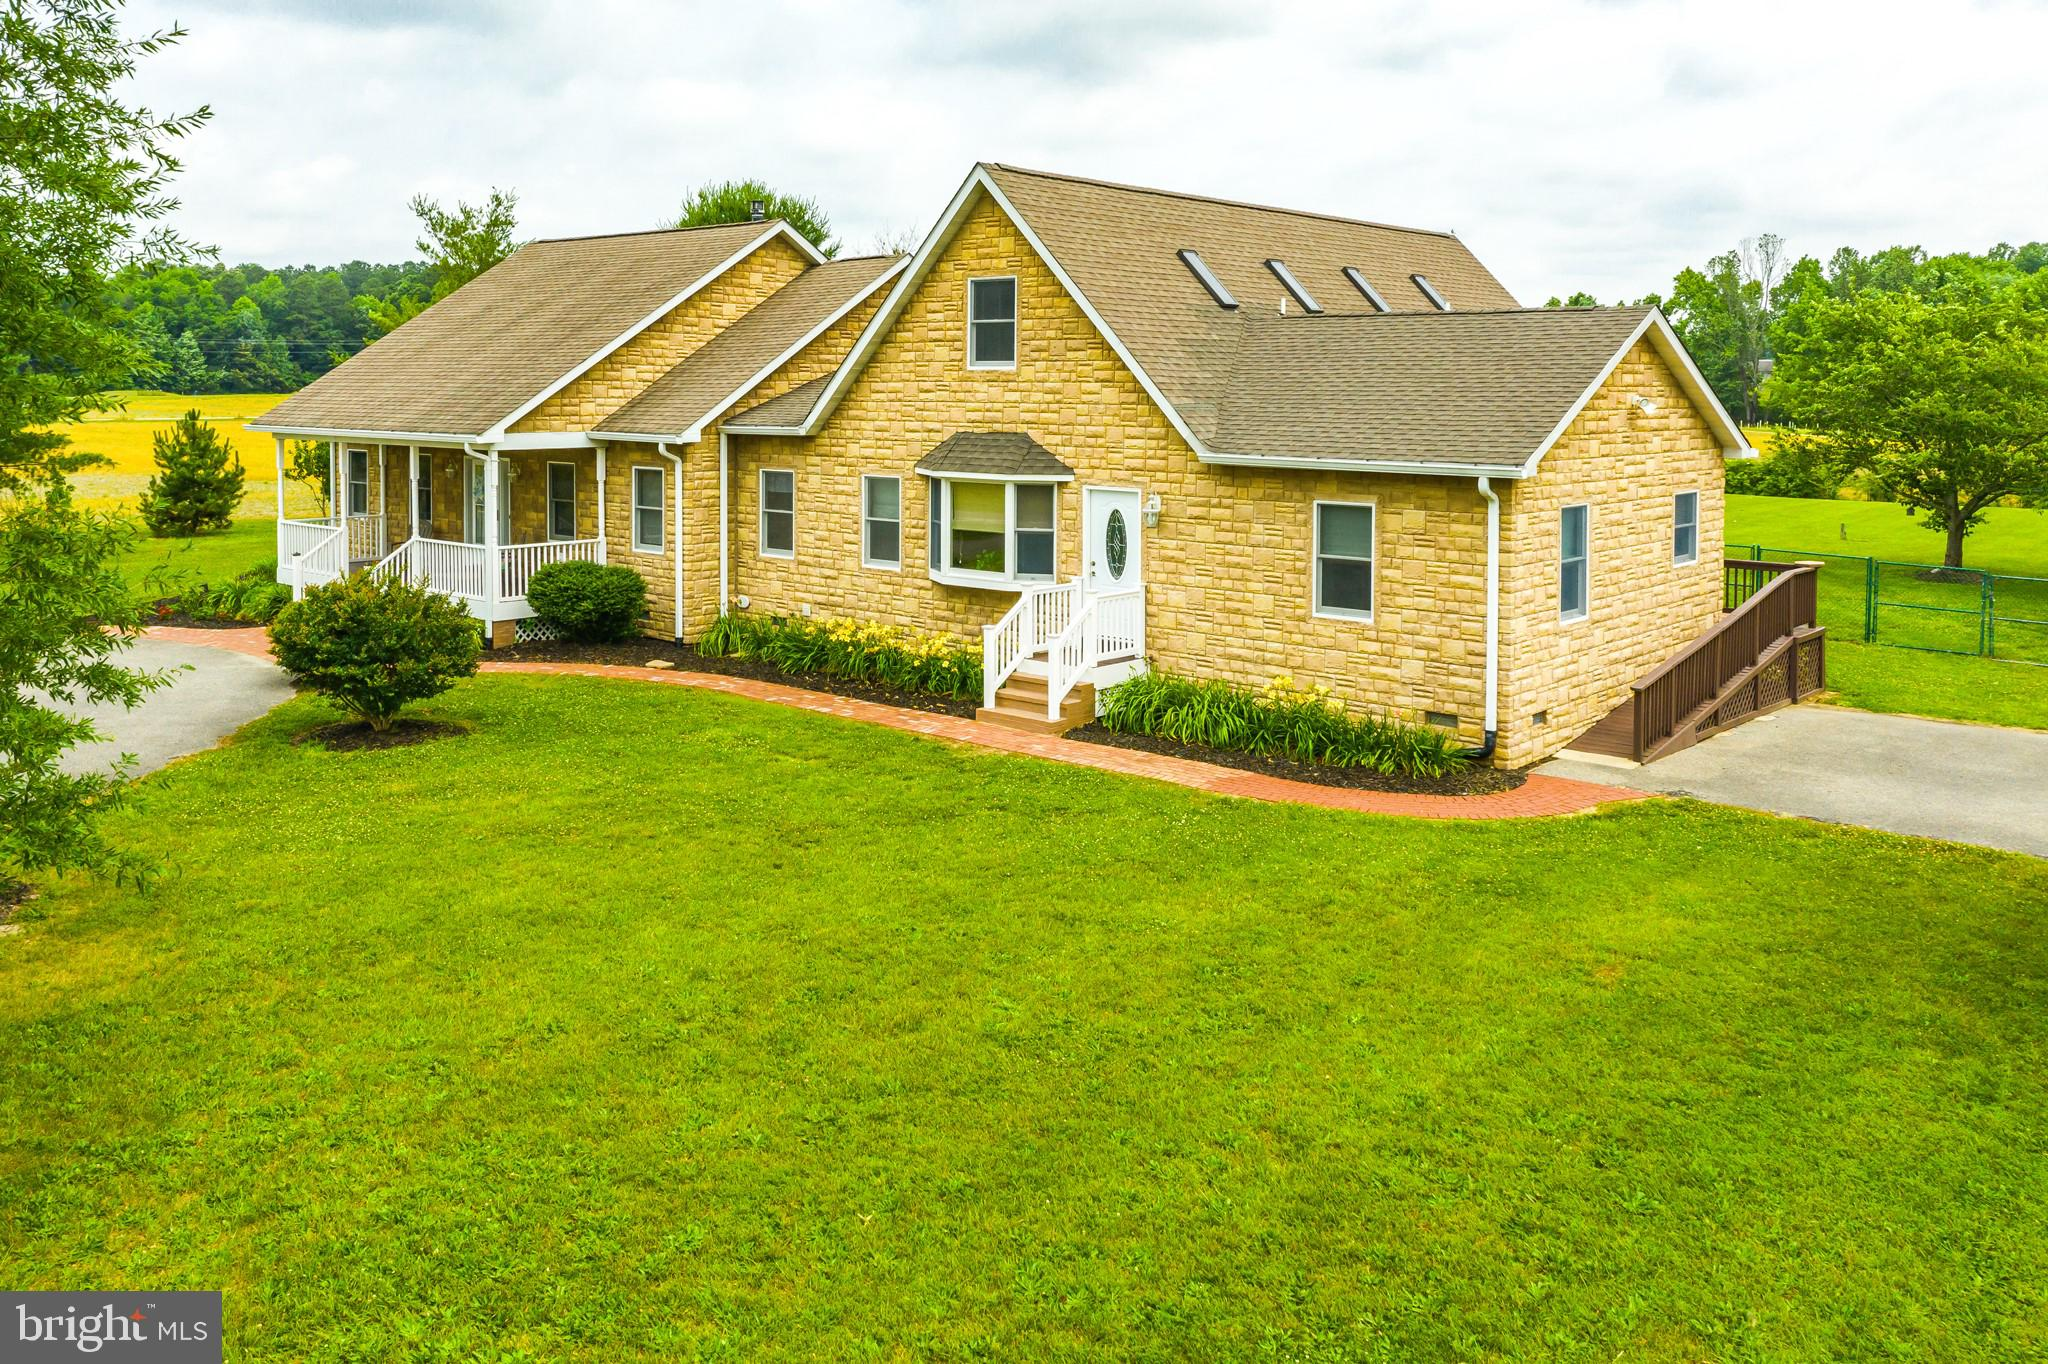 19030 RUSSELL ROAD, VALLEY LEE, MD 20692